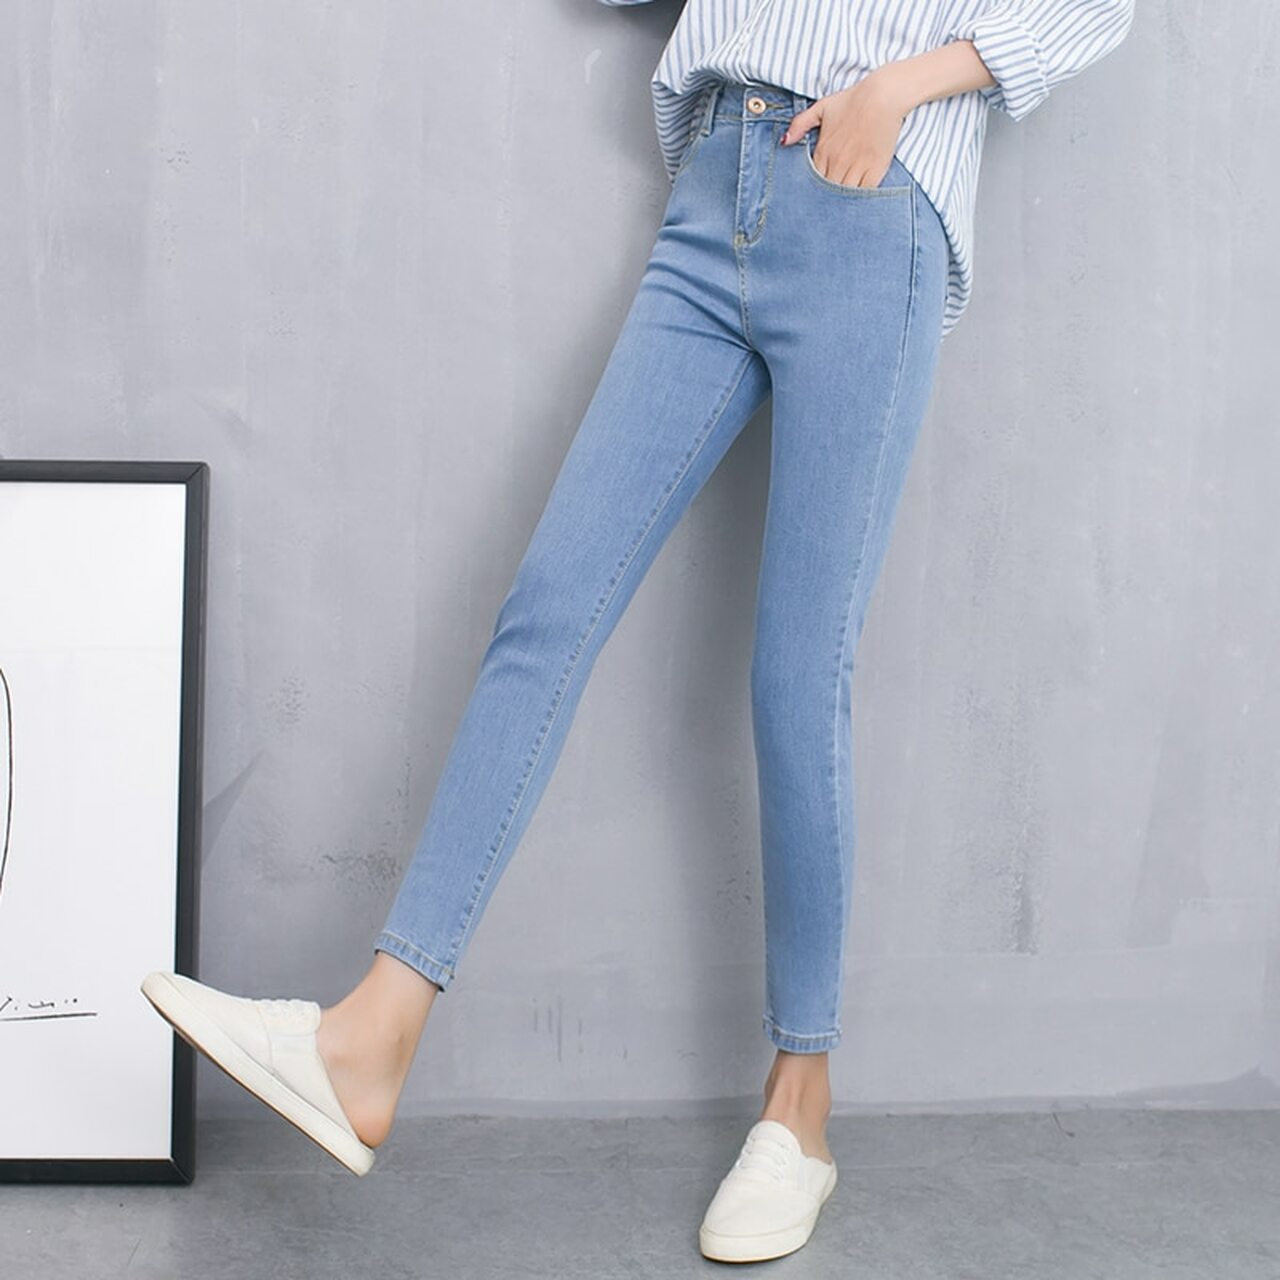 ba9bc50e756d ... Skinny Jeans Woman Autumn New 2018 High waist Women Fashion Slim Jeans  Female washed casual skinny ...